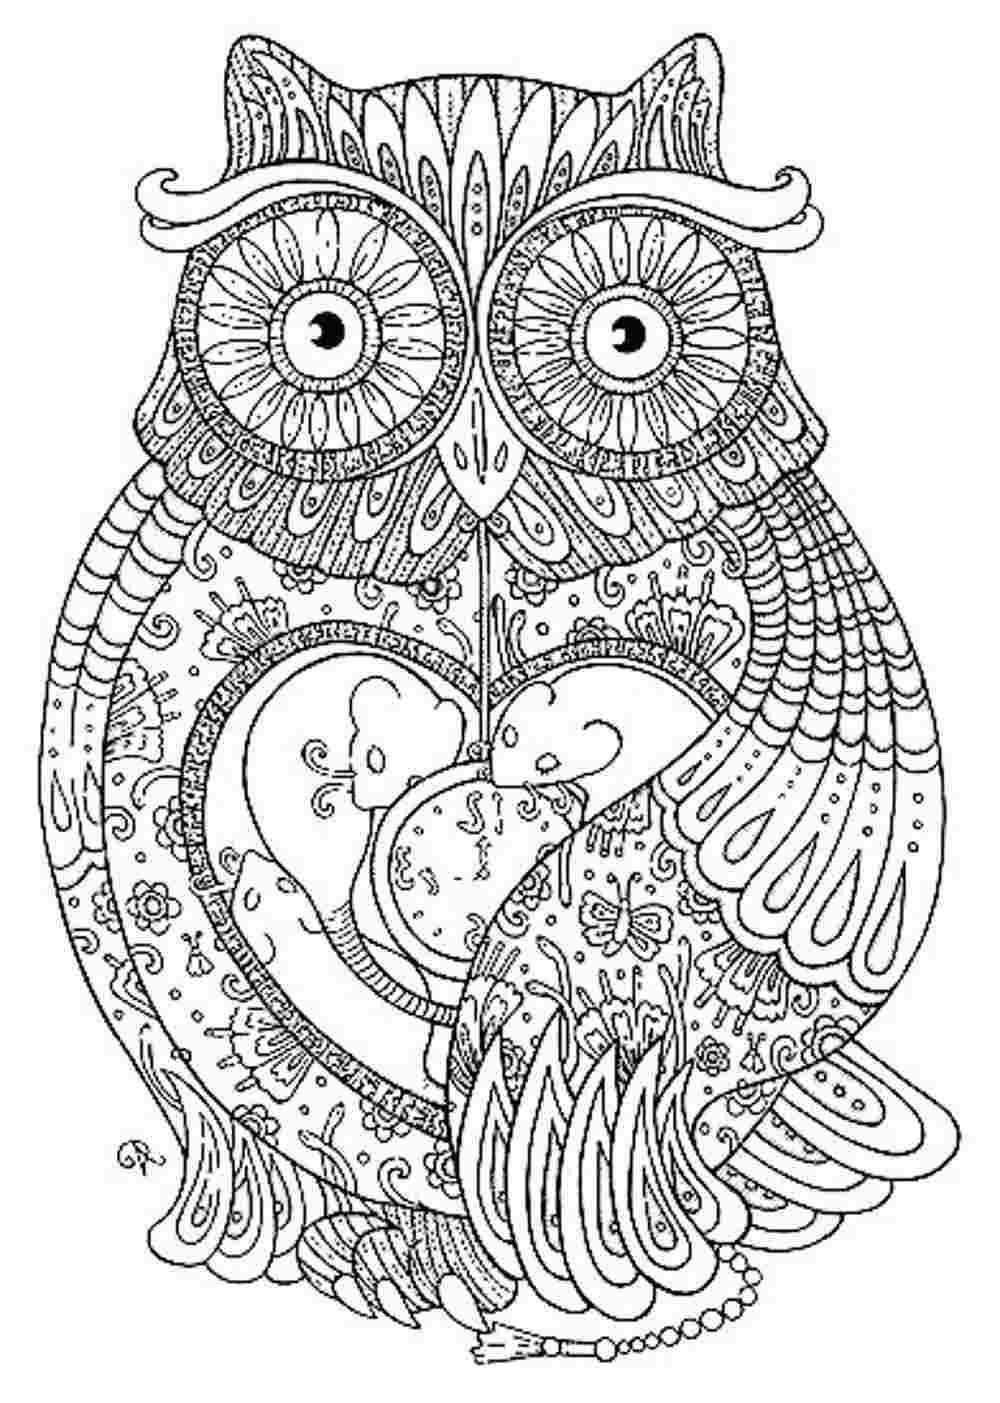 detailed coloring pages for adults - coloring pages 1365